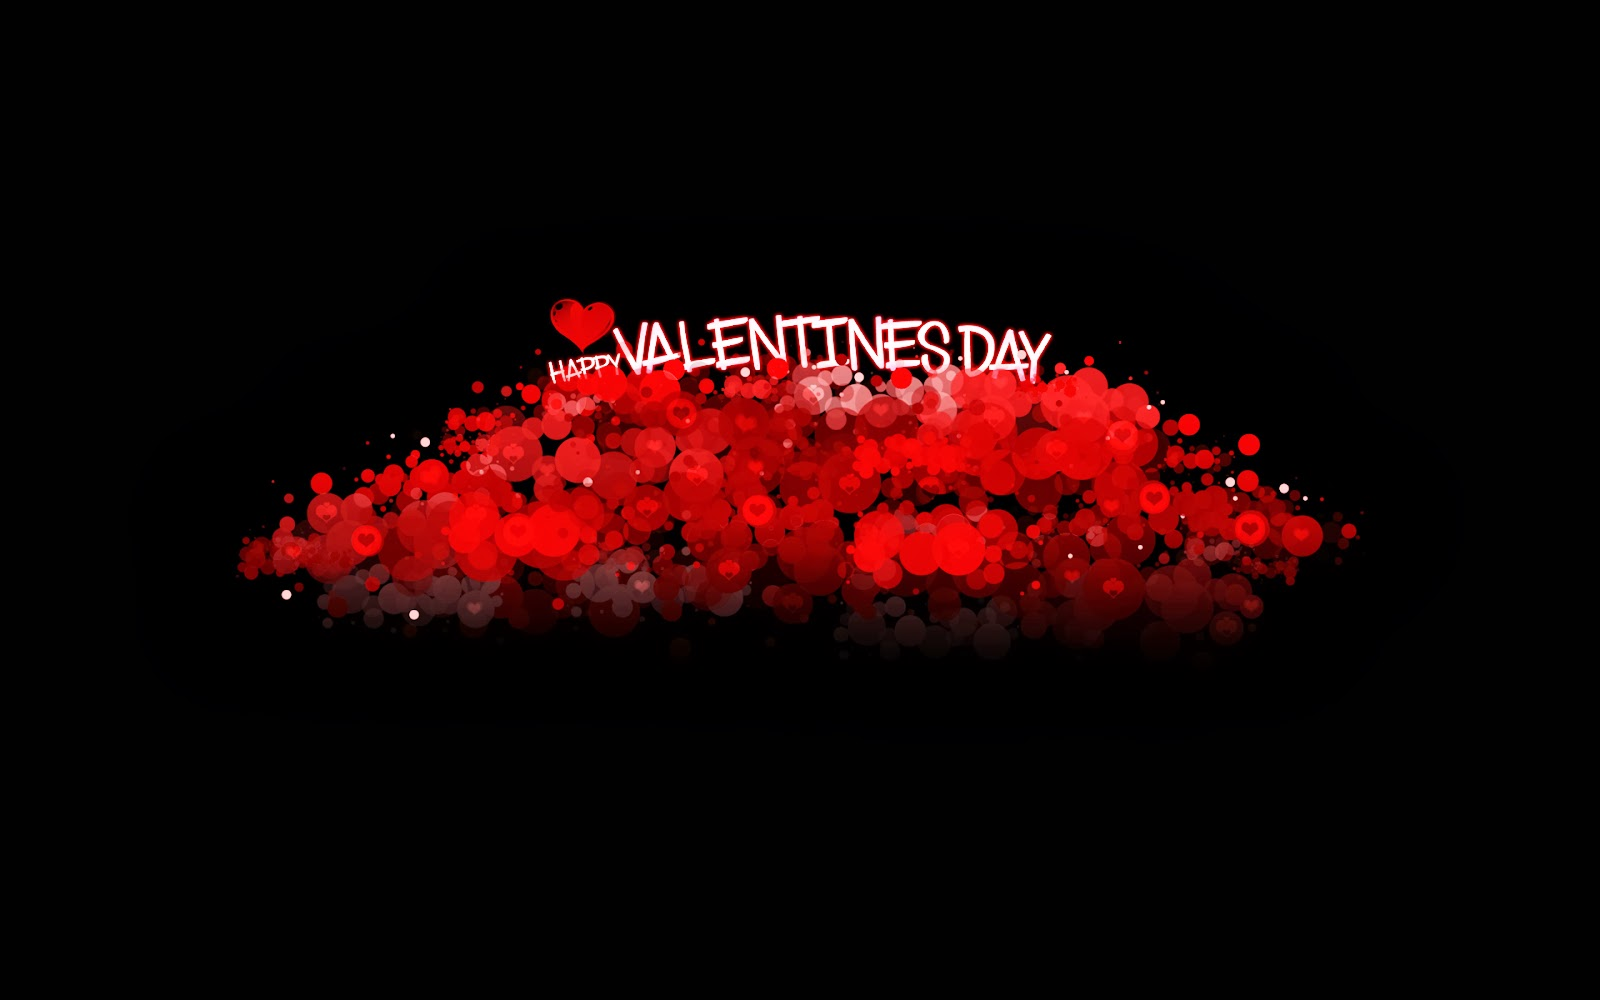 beautiful wallpapers and images valentine day wallpaper free - Valentines Day Desktop Background